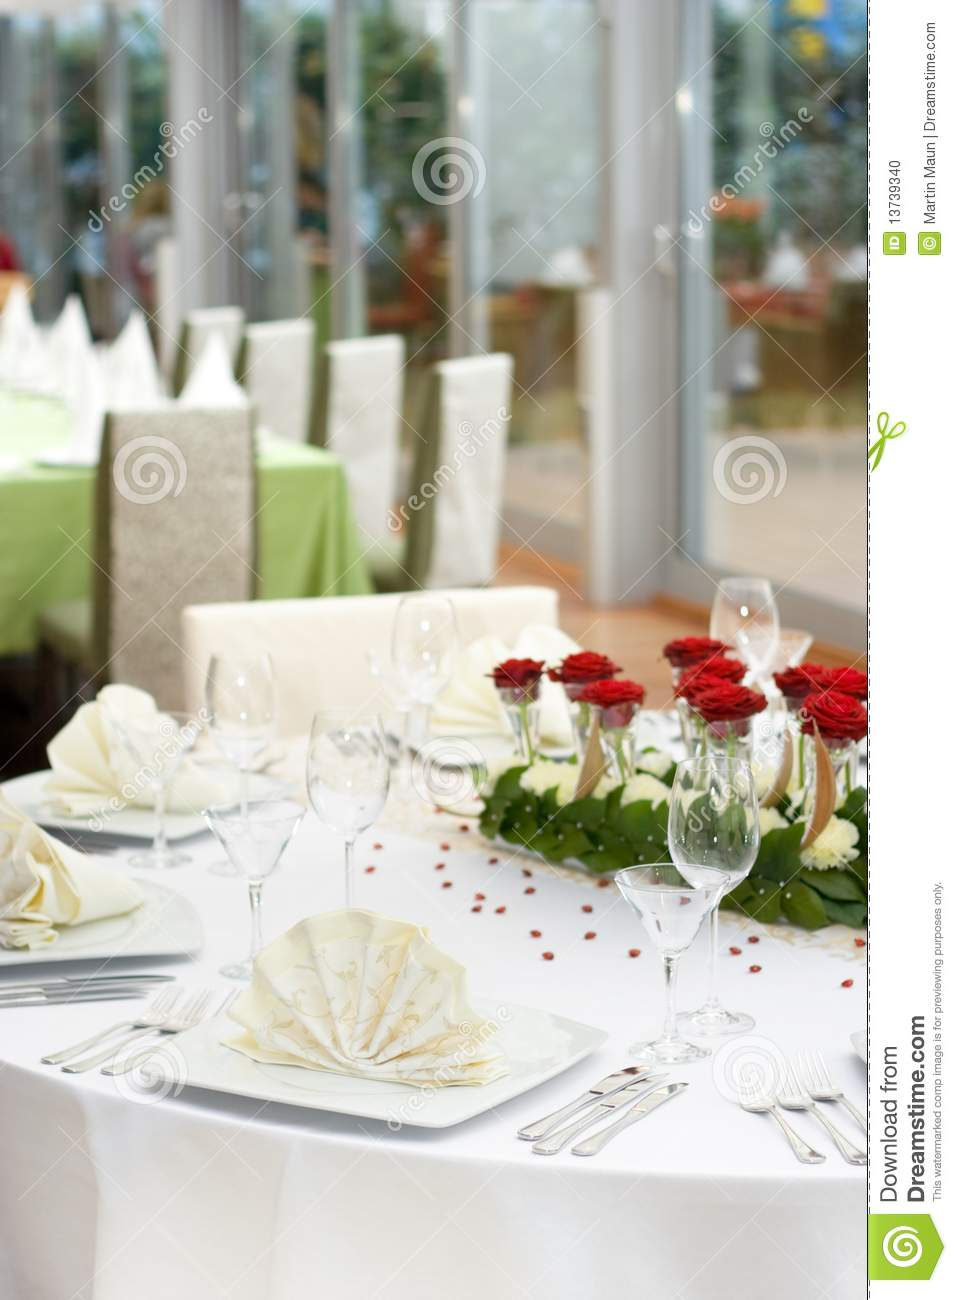 Elegant dinner table setting - Elegant Wedding Table Setting